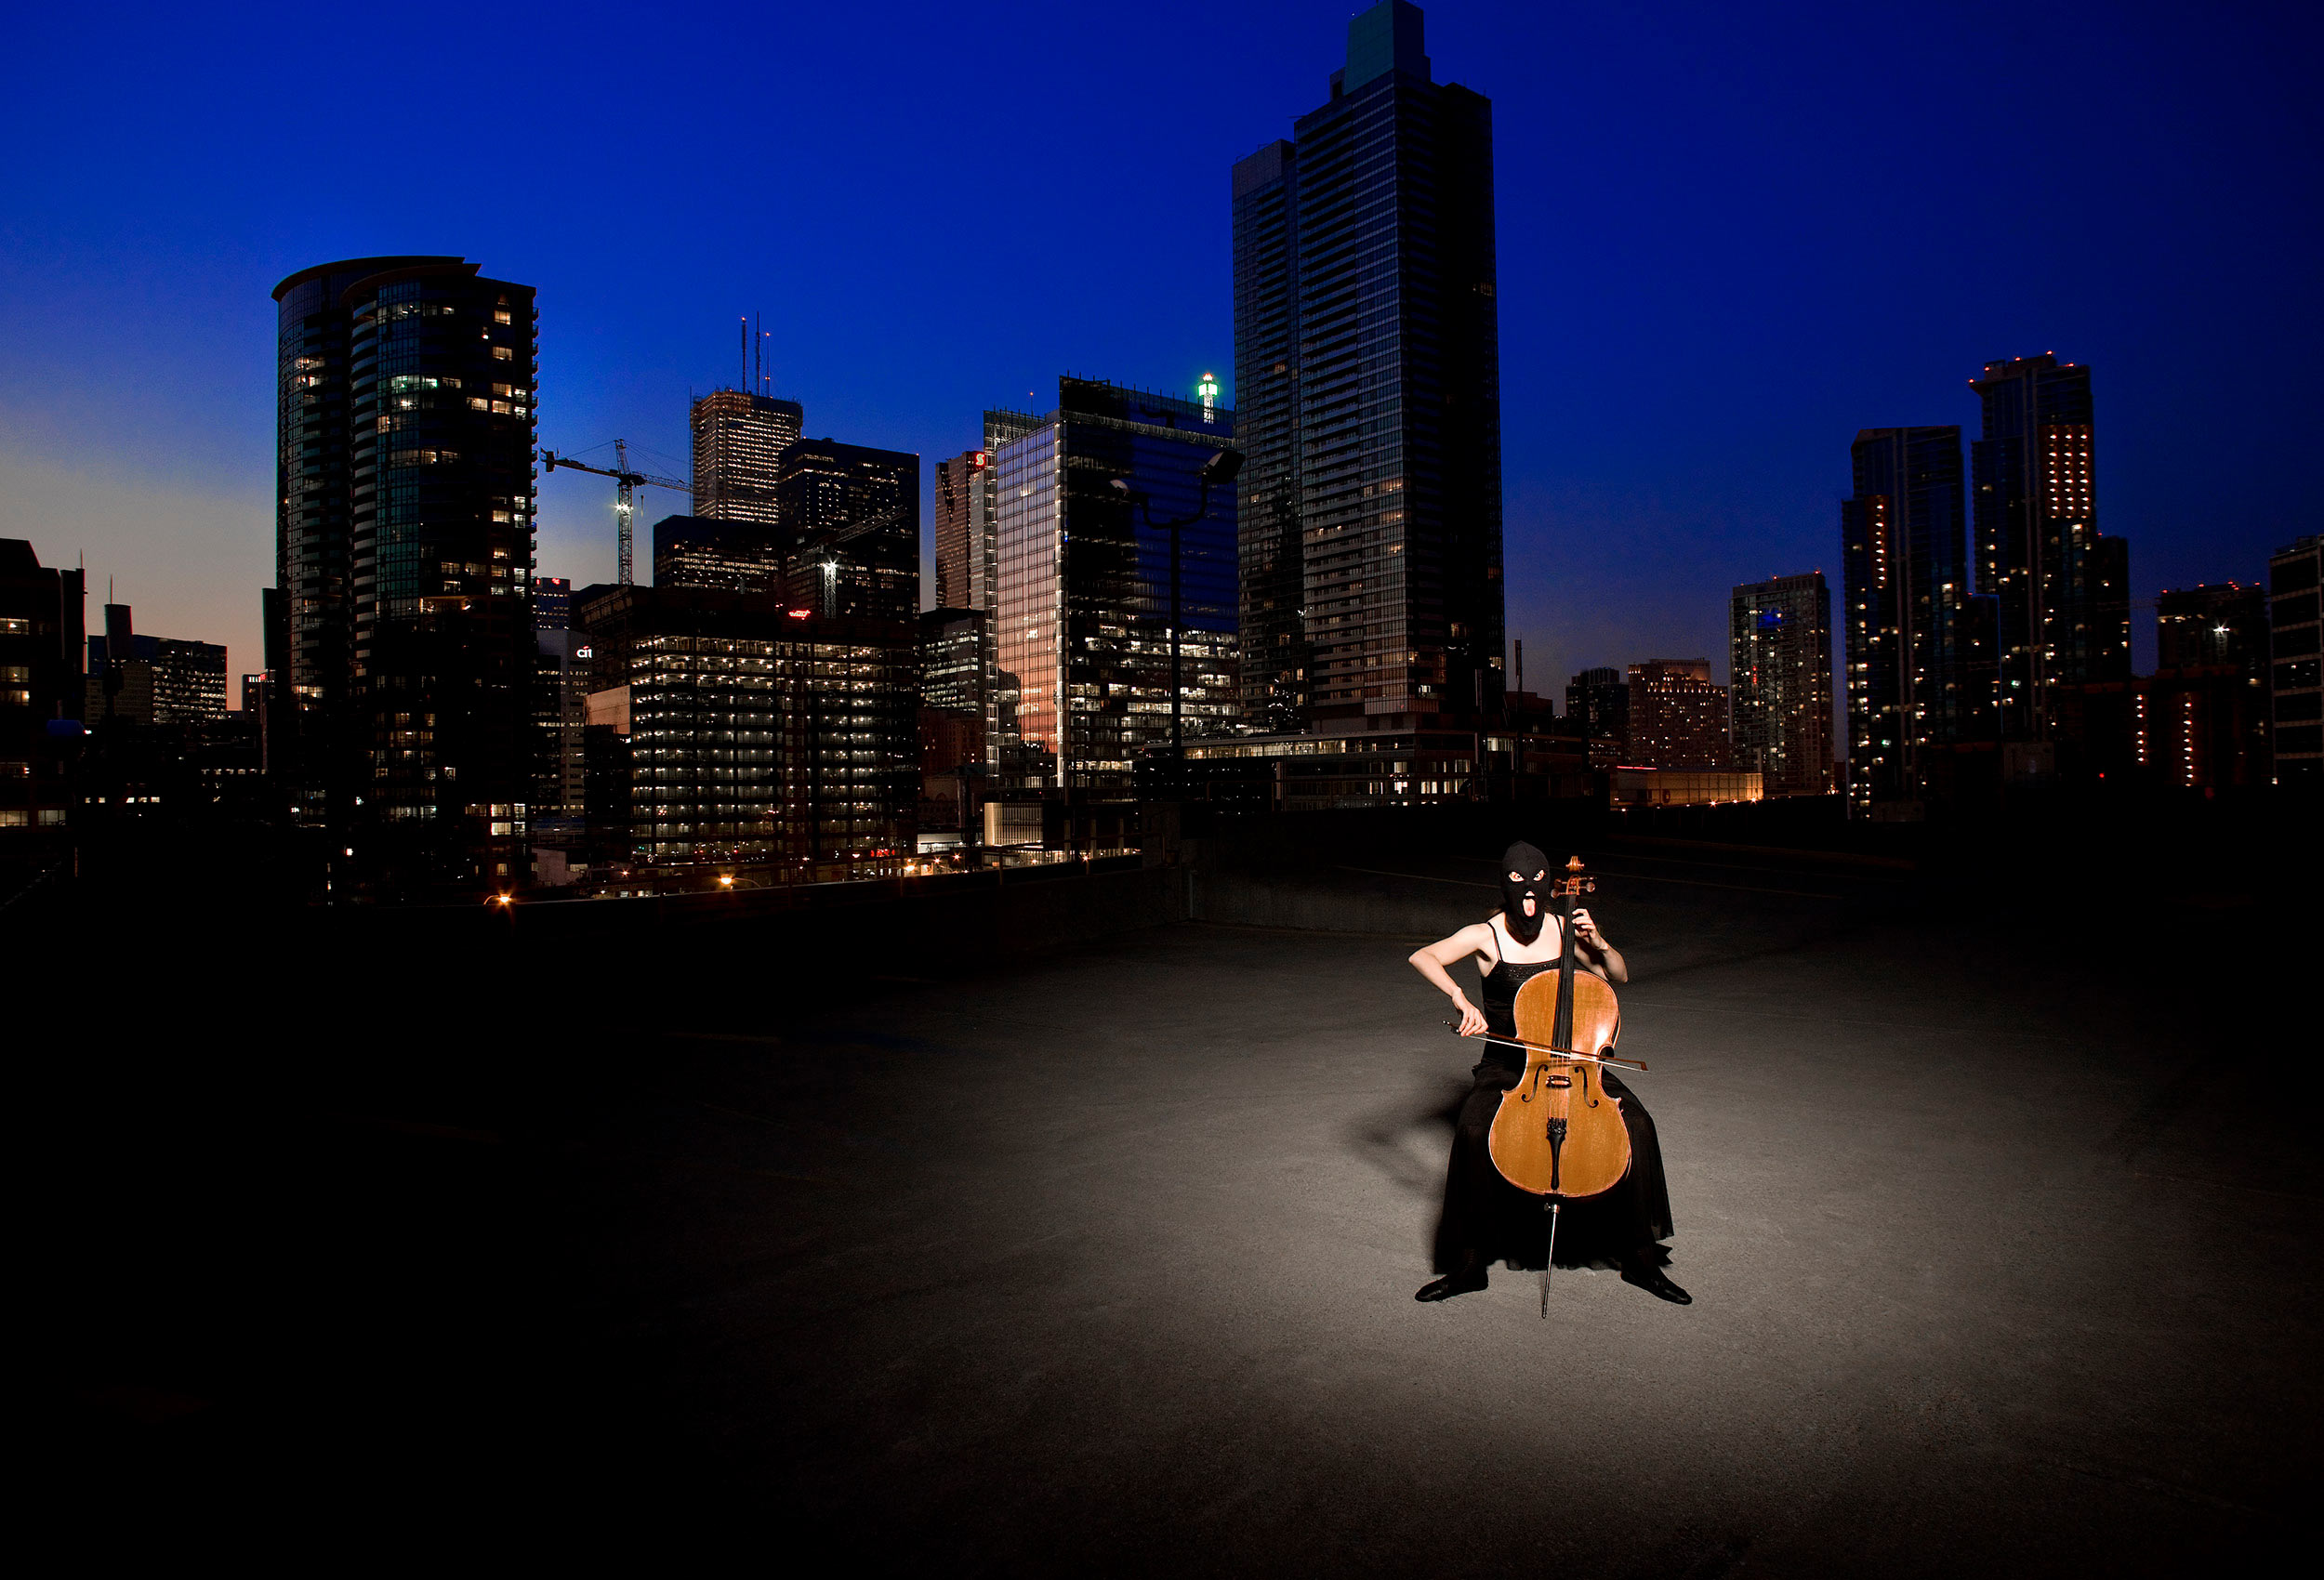 a women wearing a ski mask plays the cello in front of the toronto city skyline